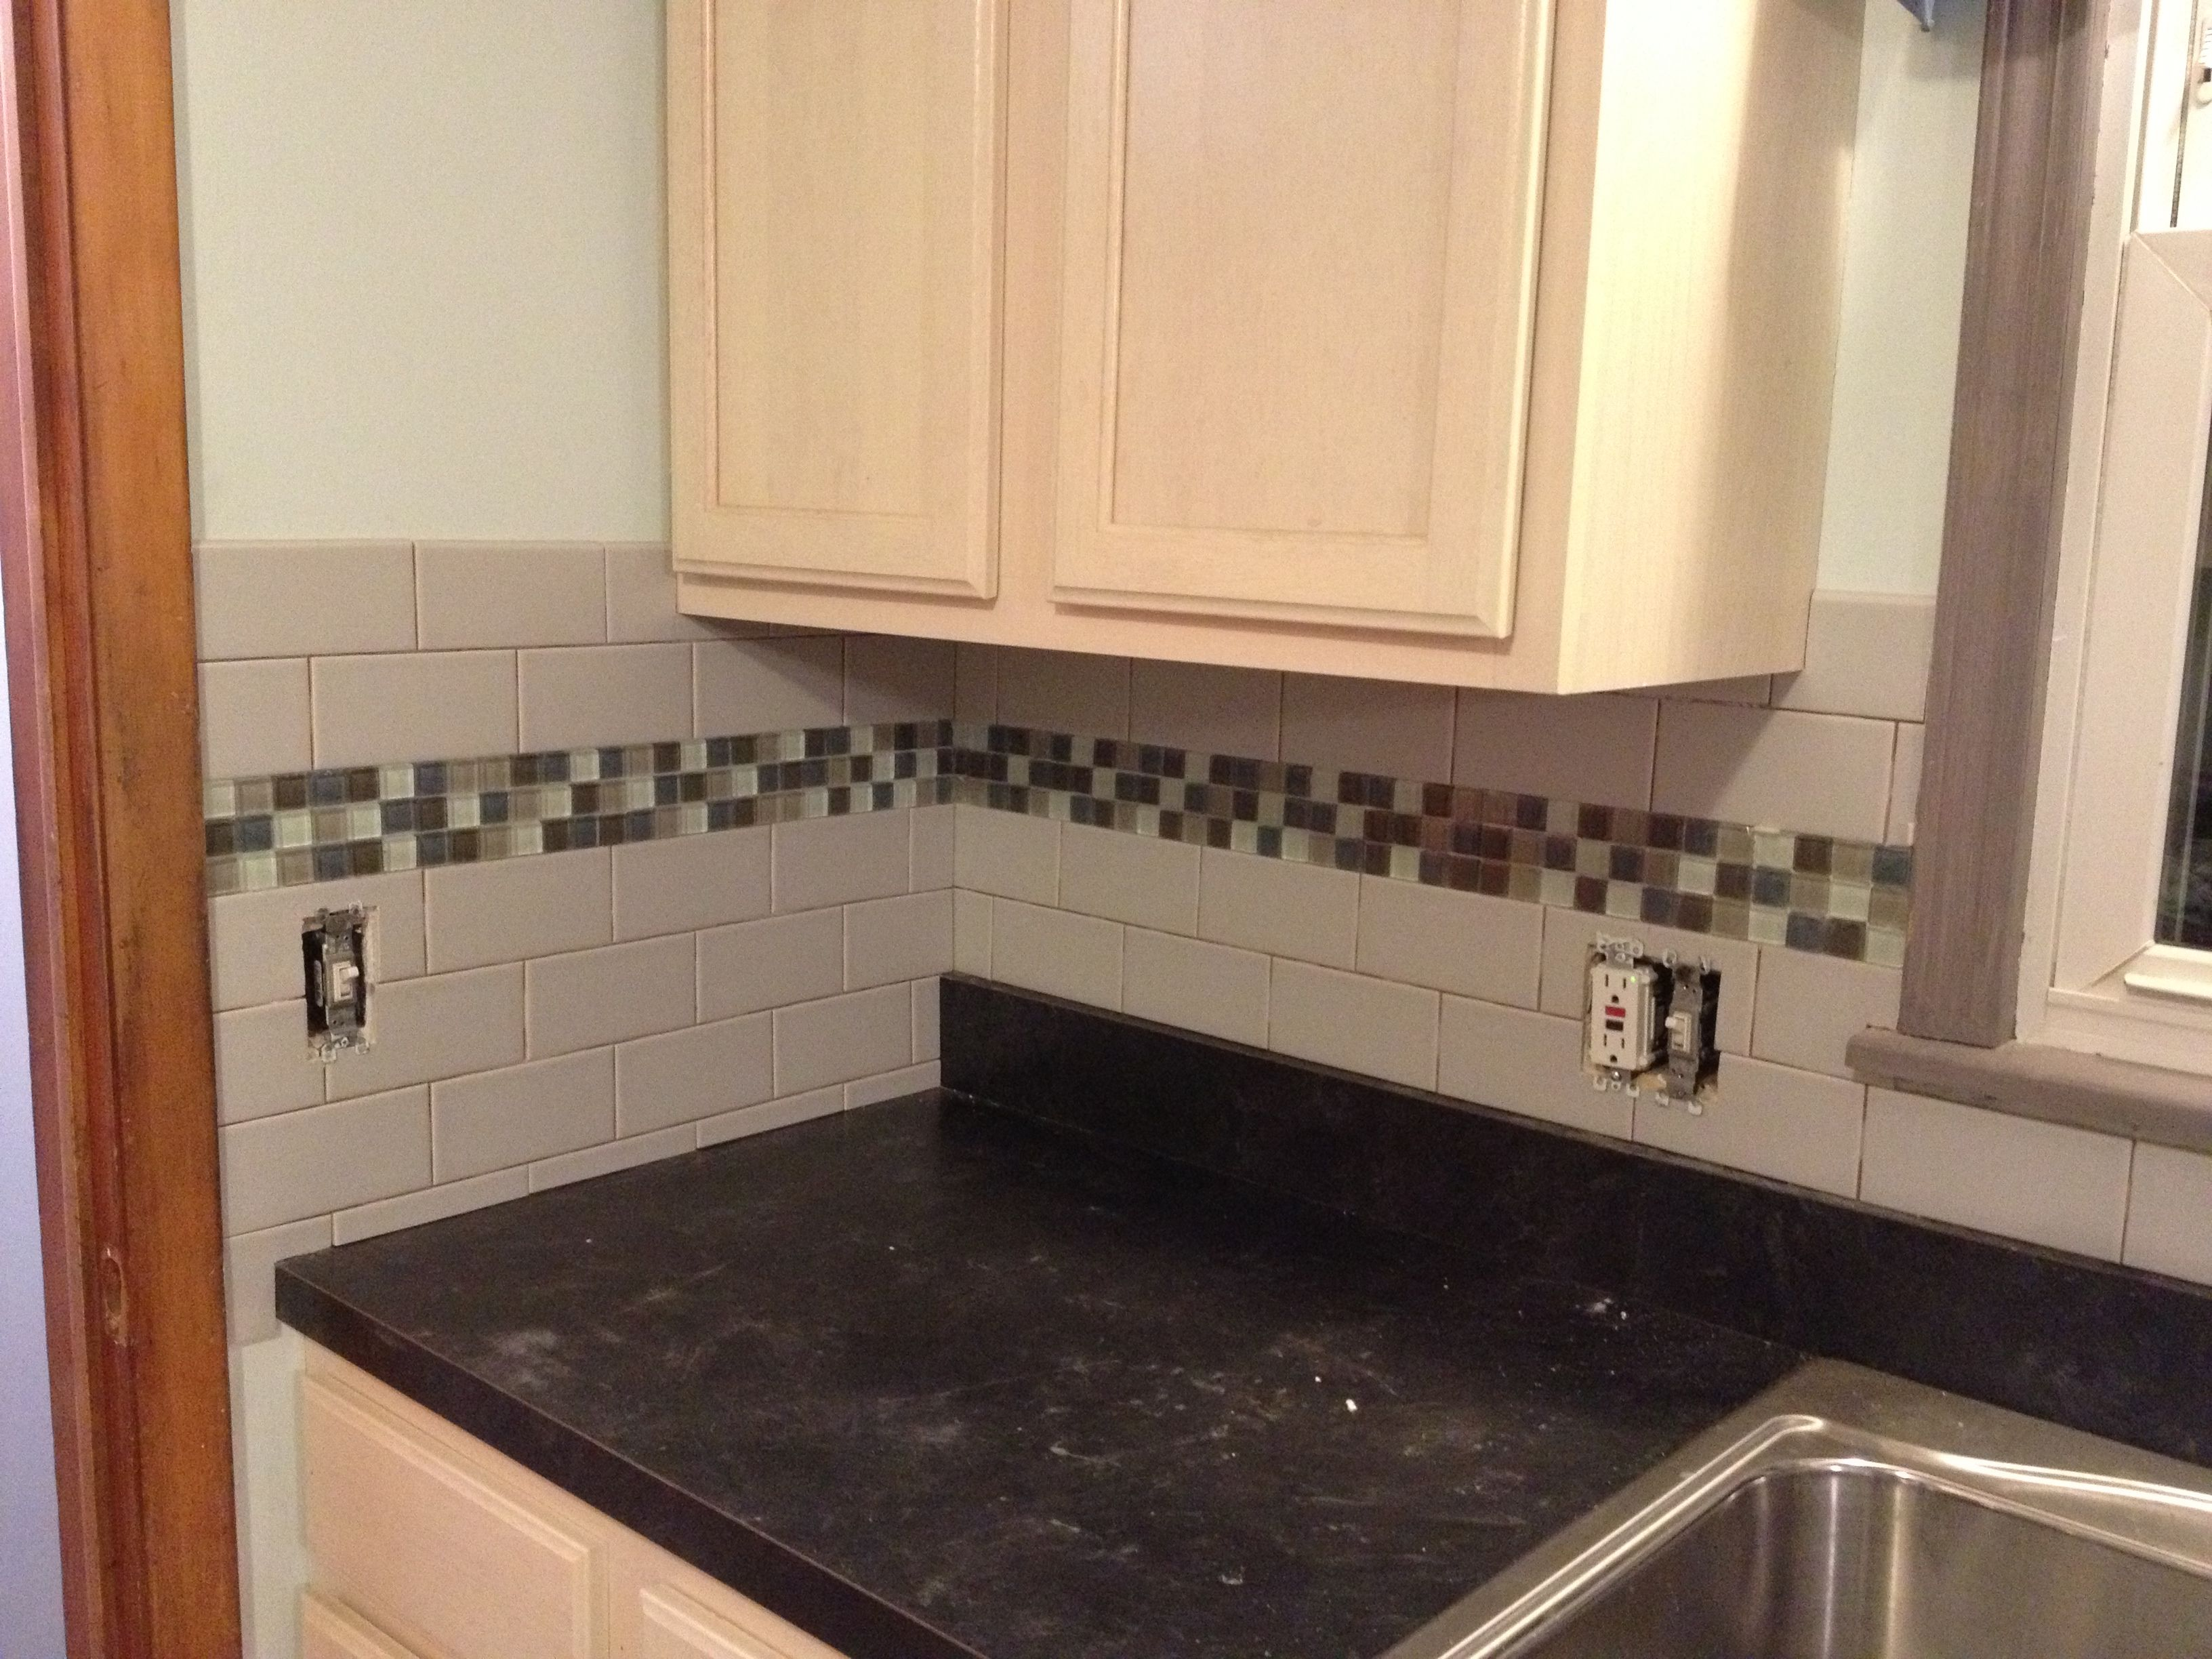 Subway tile backsplash with glass tile accent love my for Glass tile kitchen backsplash ideas